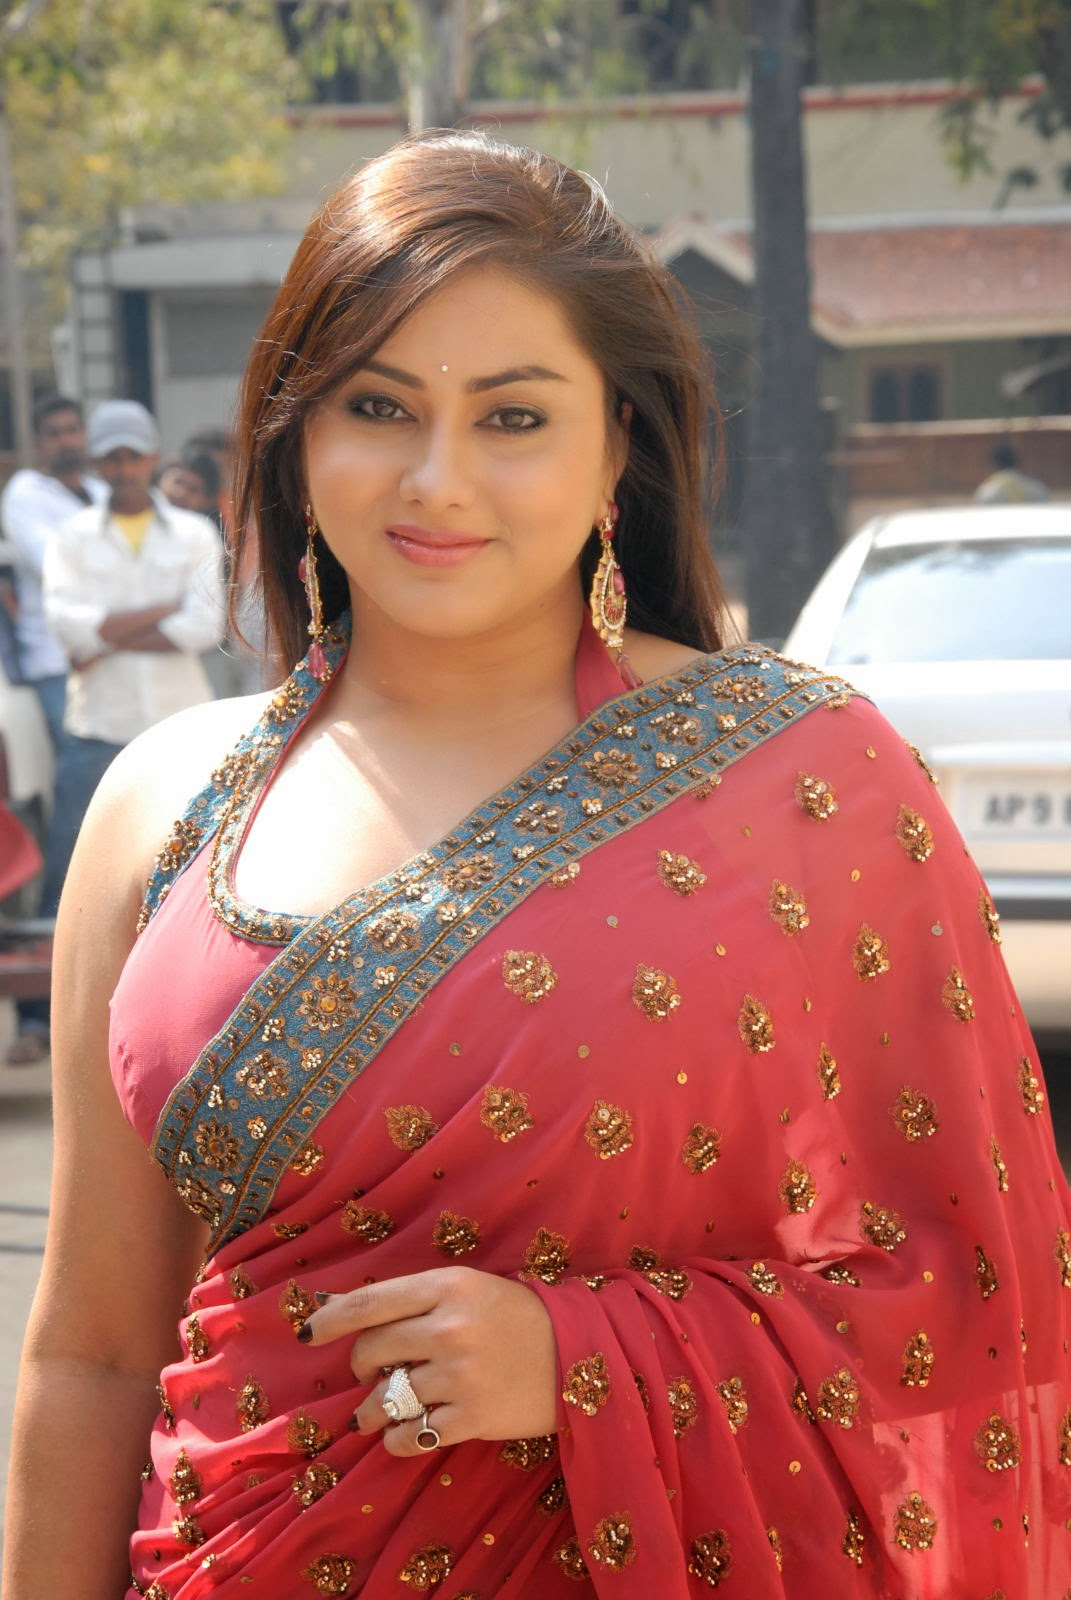 Actress In Red Saree: Hot South Indian Actress Namitha Kapoor Spicy Pictures